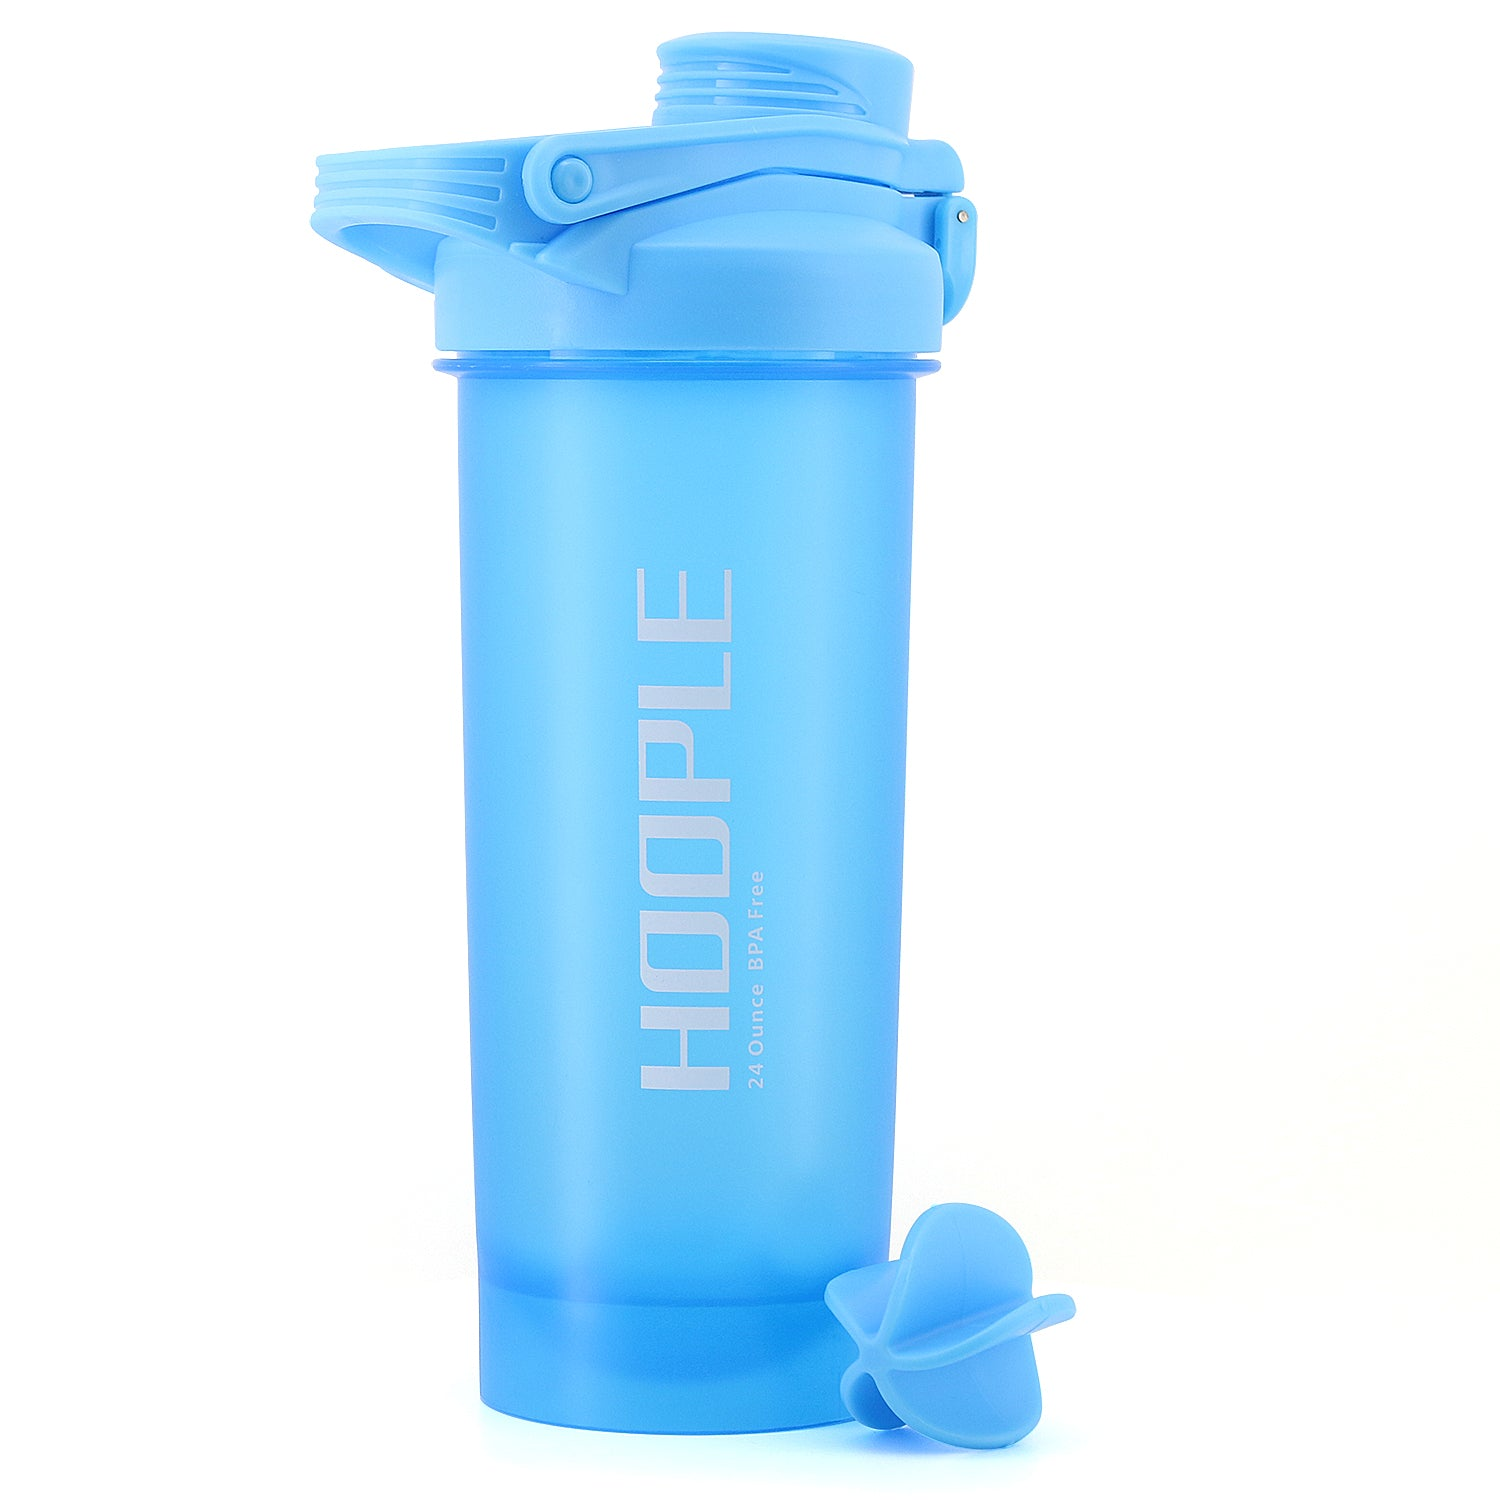 Hoople 24 OZ Shaker Bottle Protein Powder Shake Blender Gym Smoothie Cup, BPA Free, Auto-Flip Leak-Proof Lid, Handle with Ball Included - Aqua